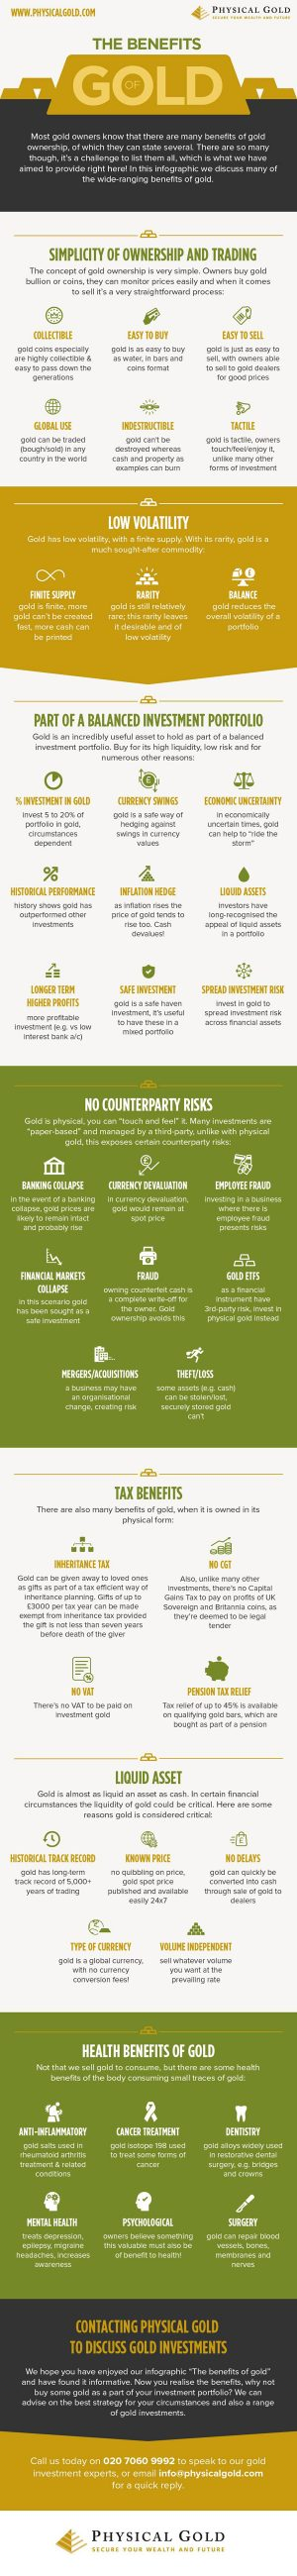 Owning gold, a list of benefits – infographic from Physical Gold